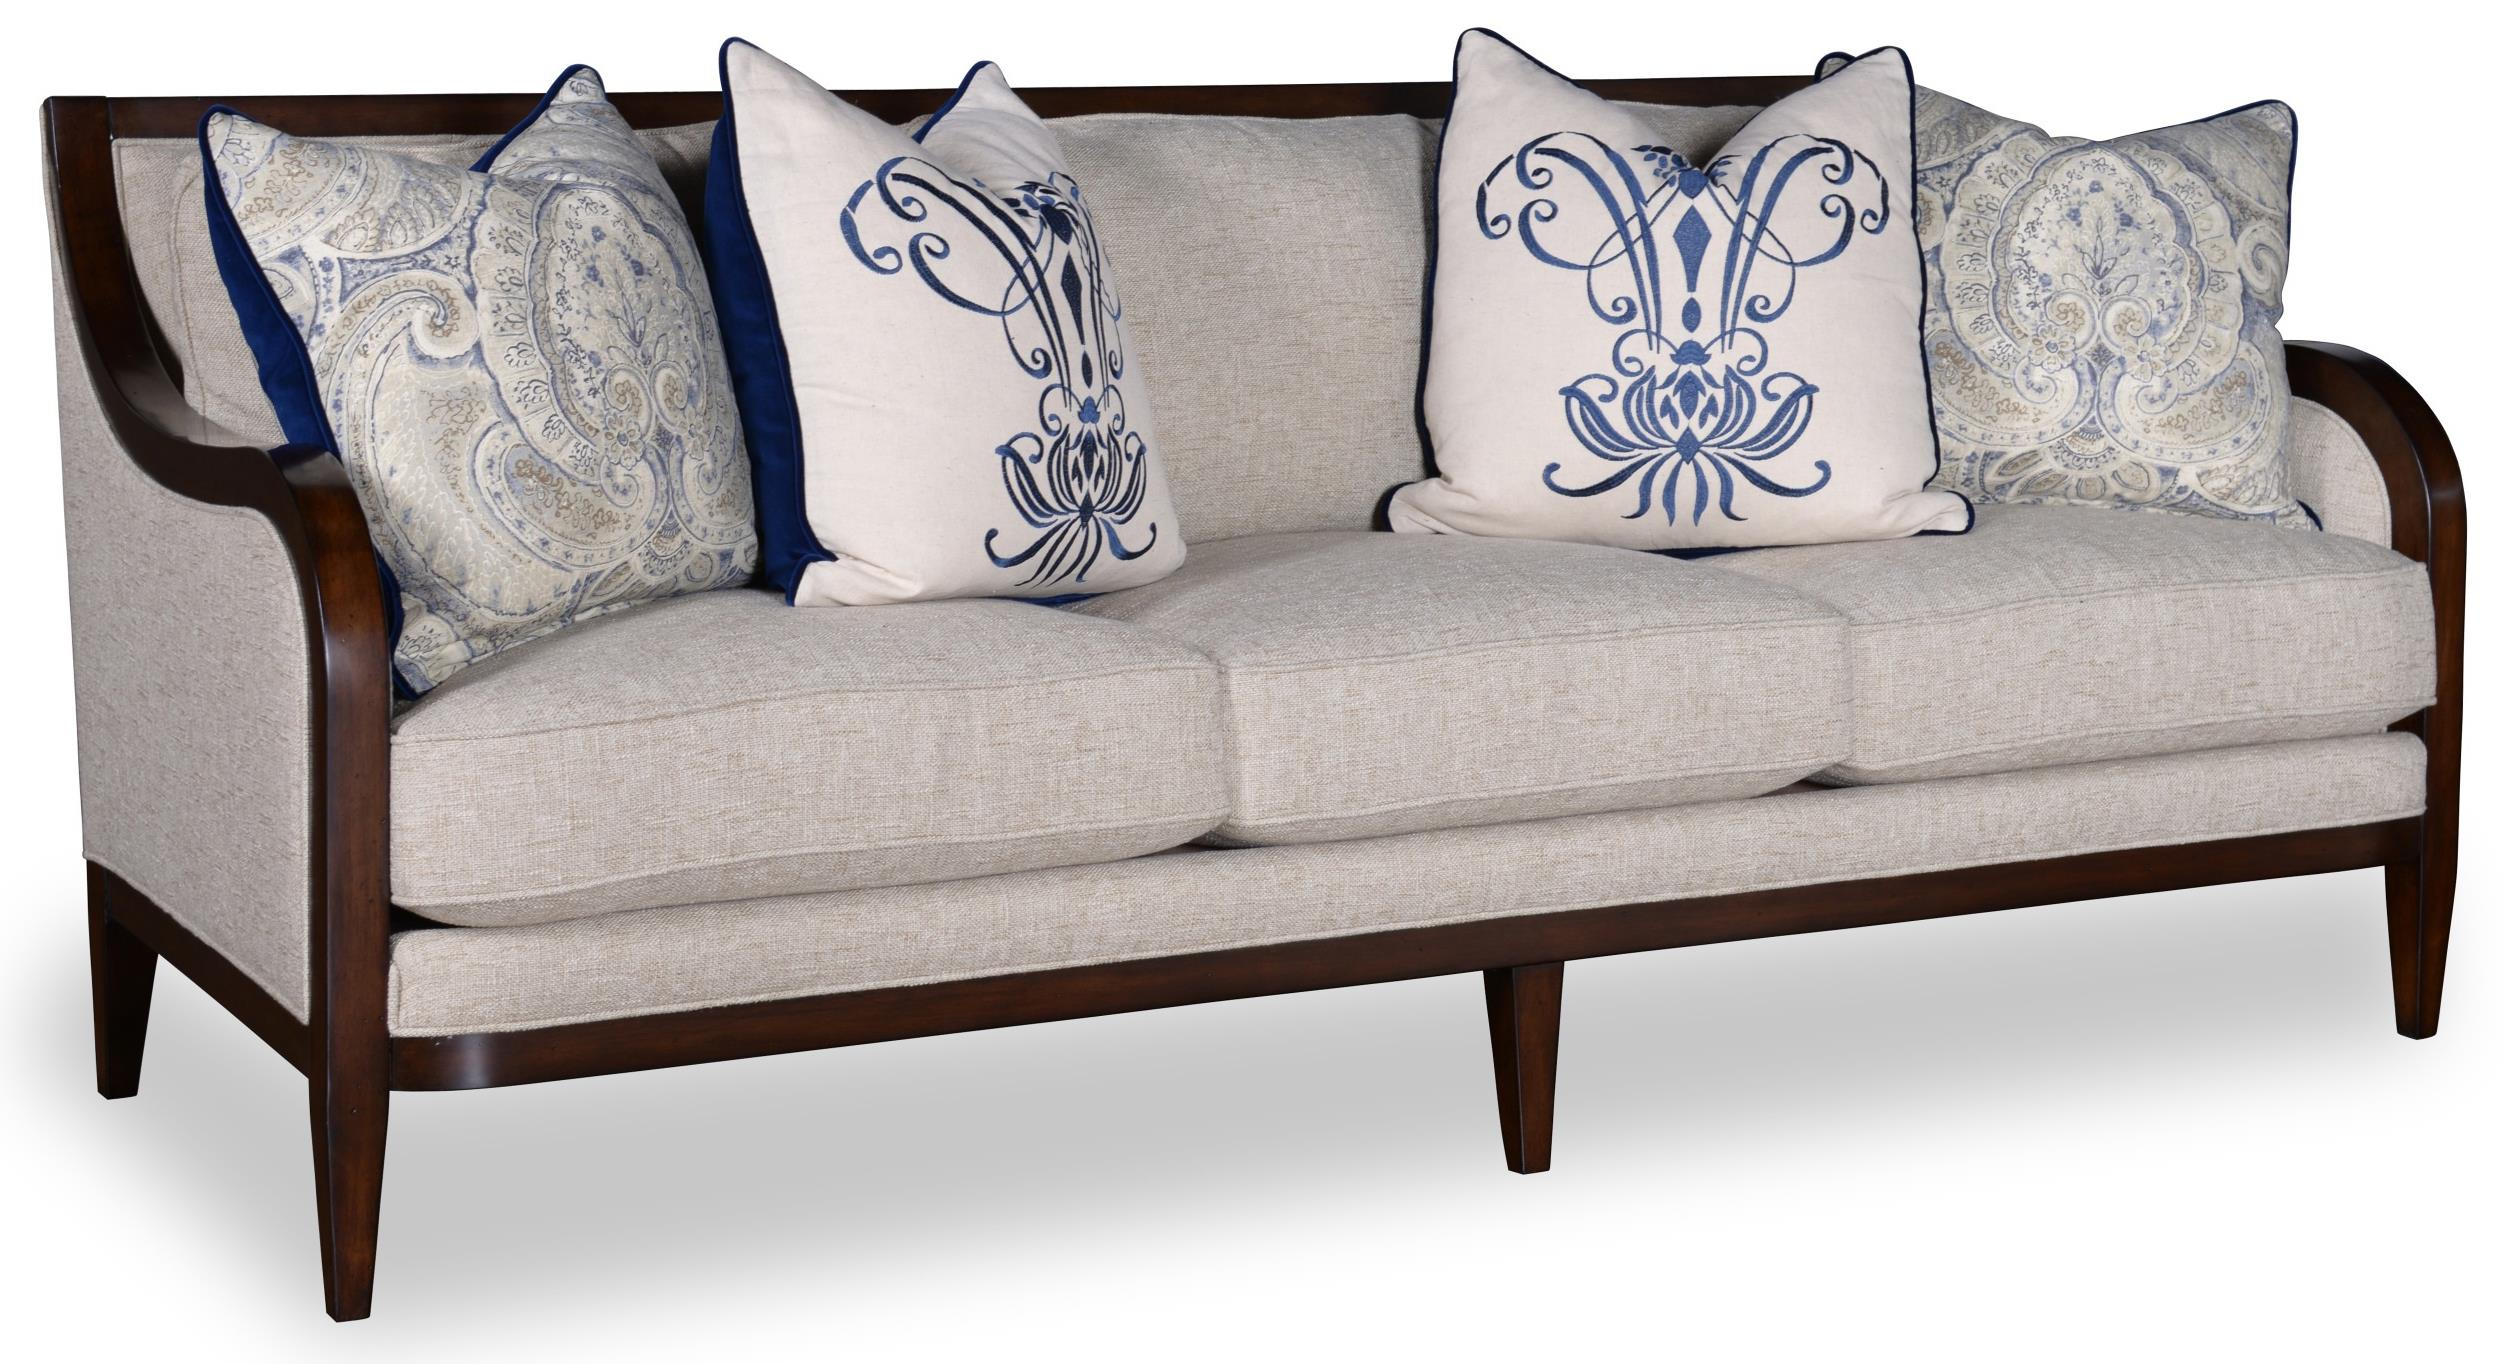 Charmant A.R.T. Furniture Inc Bristol 3 Seat Sofa With Tapered Legs   Item Number:  516521